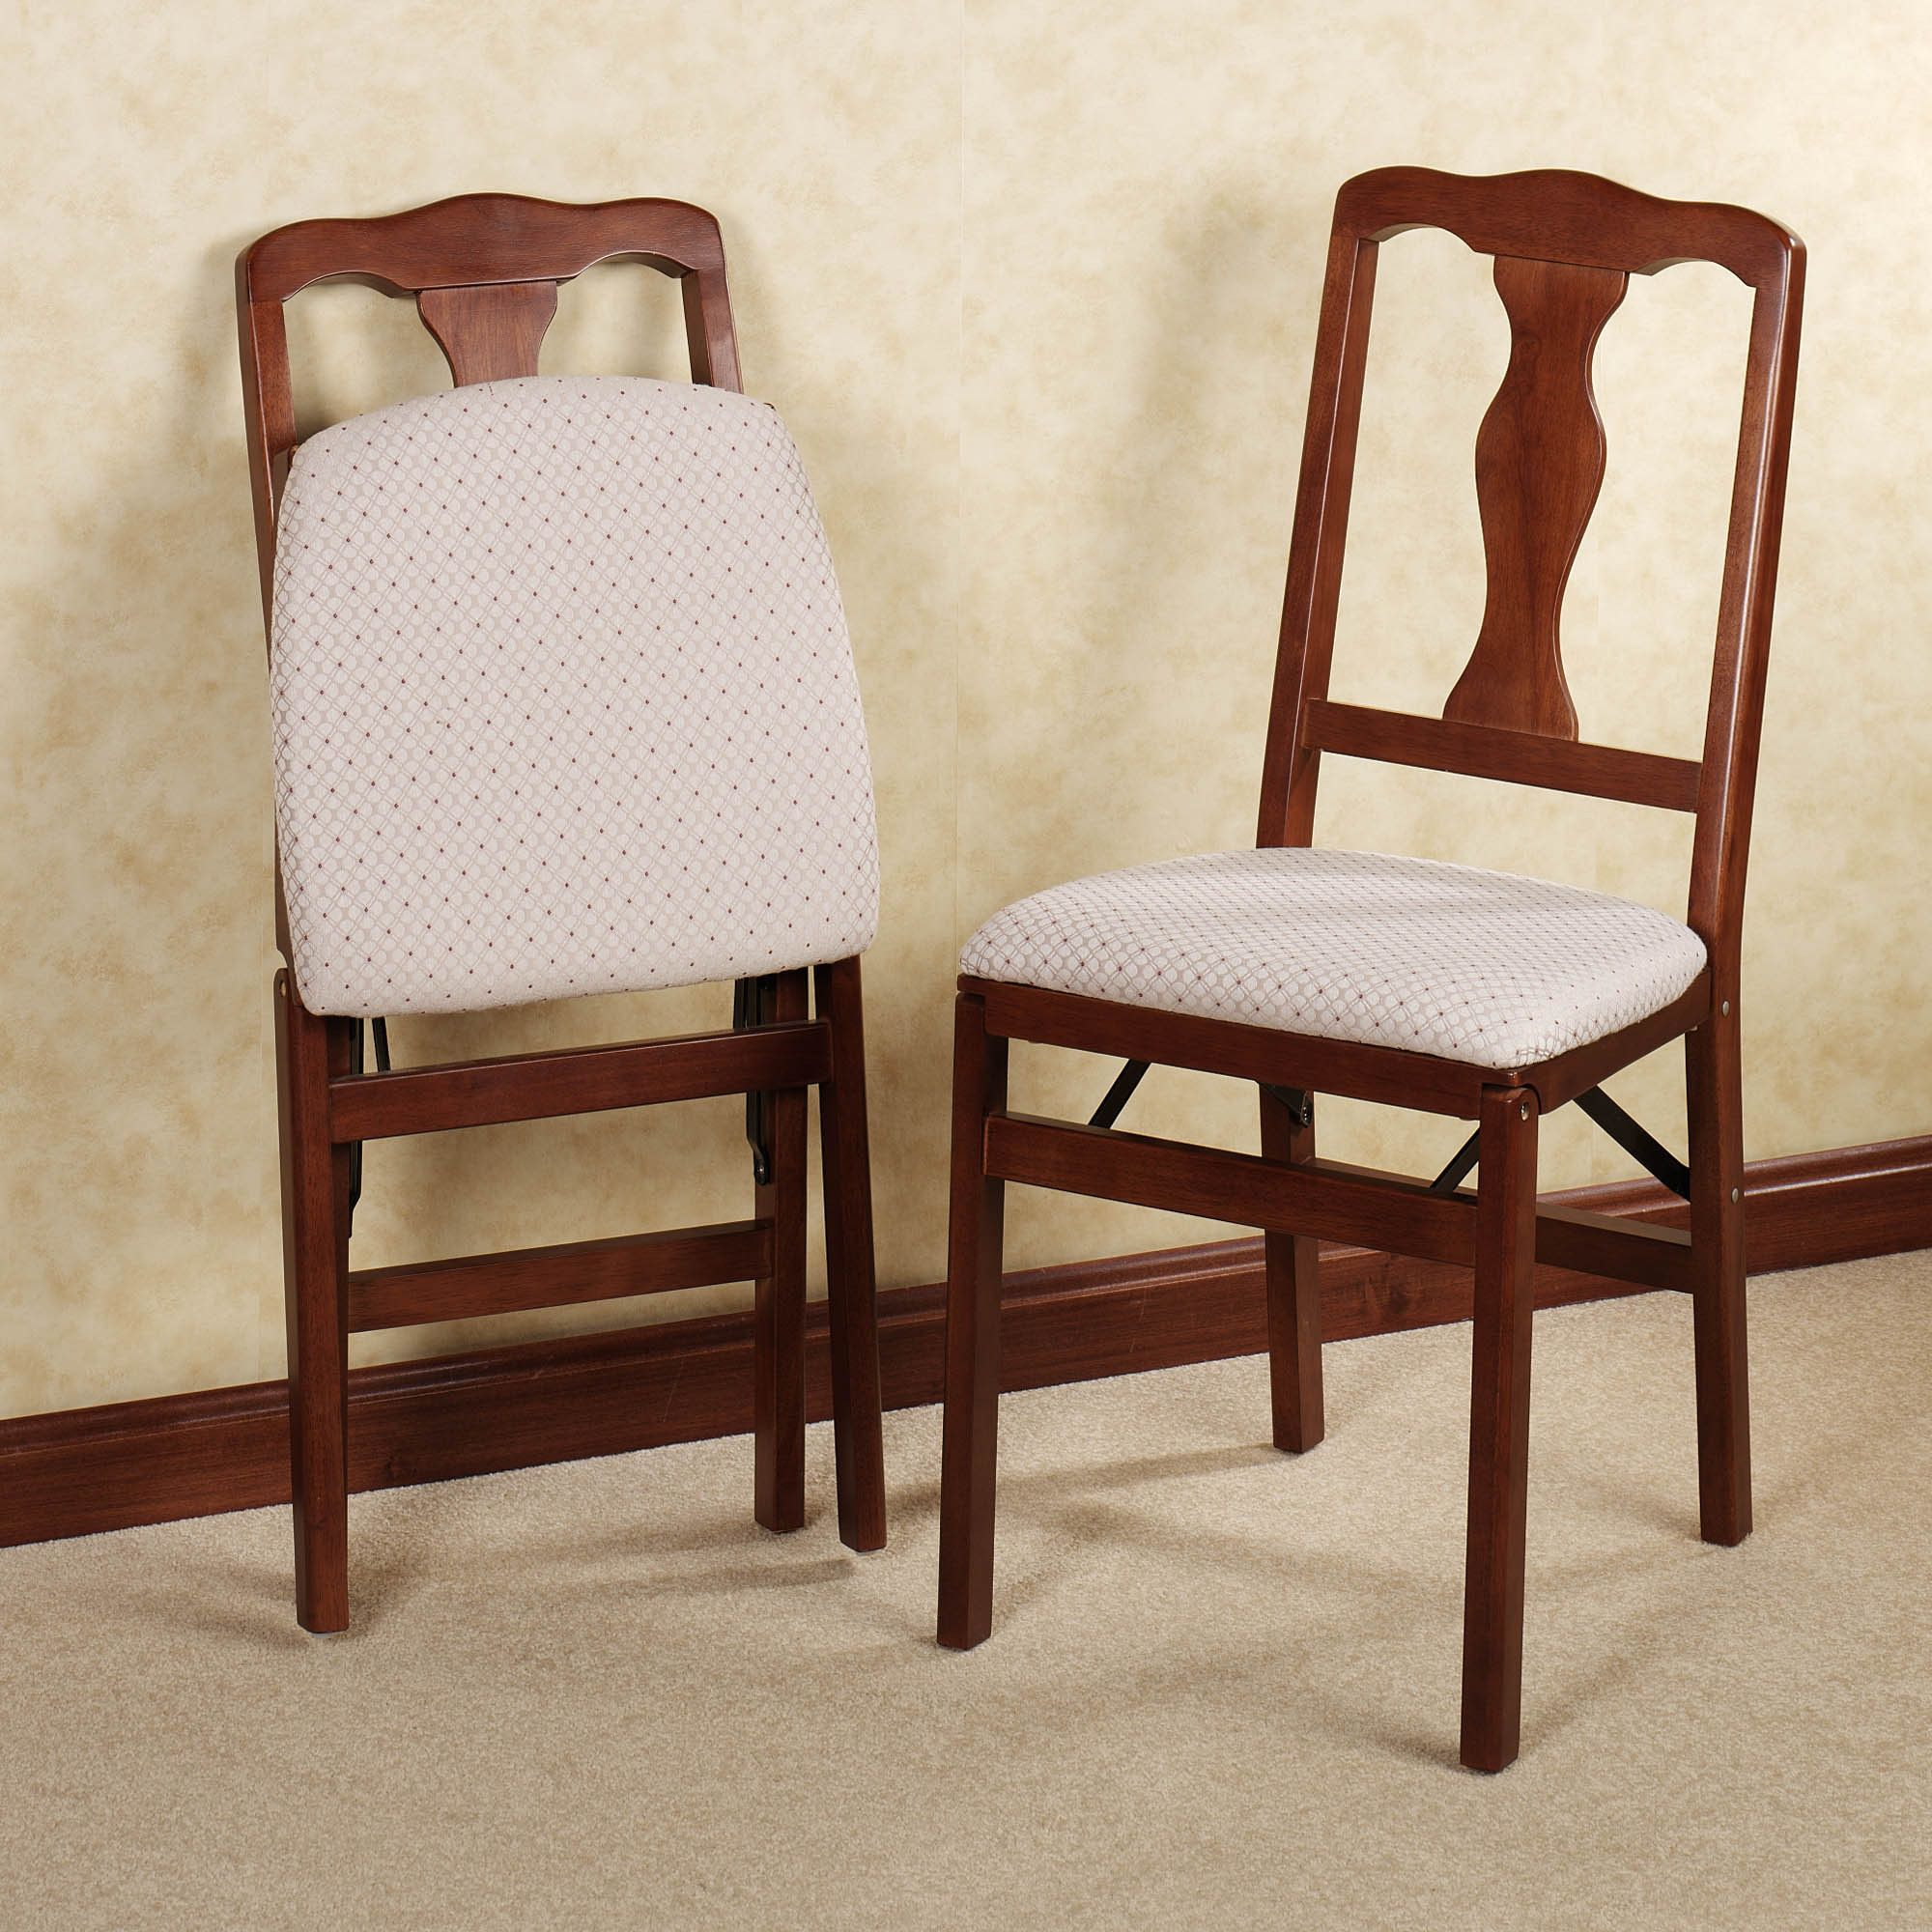 Queen Anne Folding Chair Pair Padded Folding Chairs Wooden Dining Chairs Dining Chair Pads